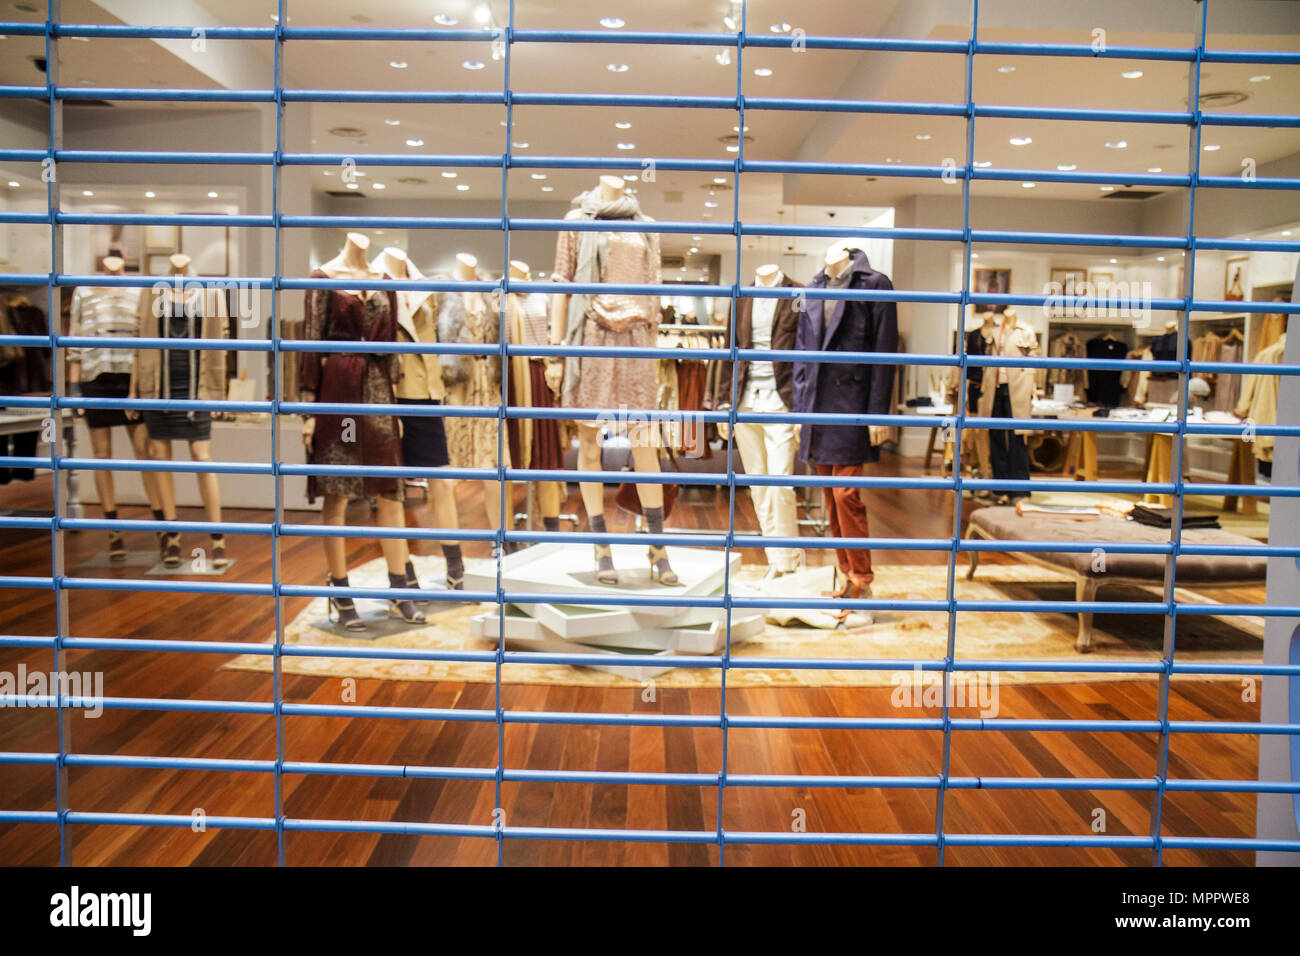 Toronto Canada Ontario Yonge Street Downtown Yonge Eaton Centre center shopping mall women's clothing store business closed secu - Stock Image